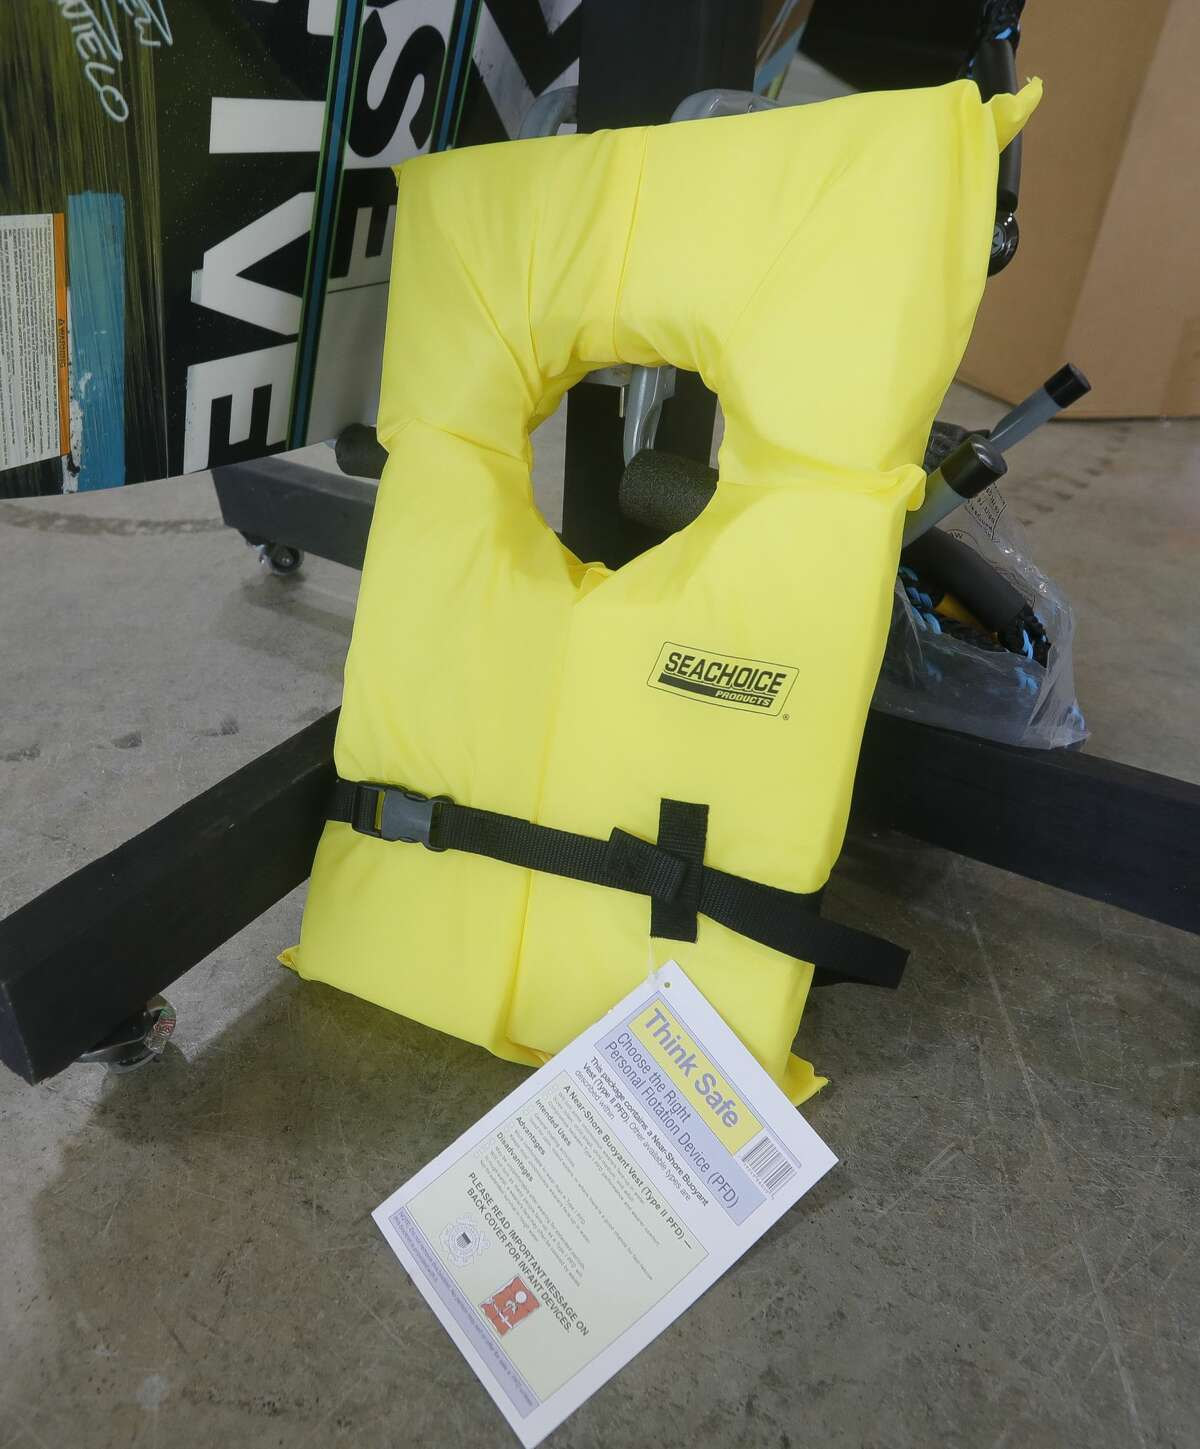 While less fashionable, the more traditional Think Safe life vest is safer than more form fitting options, since the device will keep your head above water. With all of this year's drowning victims on Lake Conroe not wearing life jackets to date, Montgomery County law enforcement and vendors continue to urge lake visitors to wear safety vests.